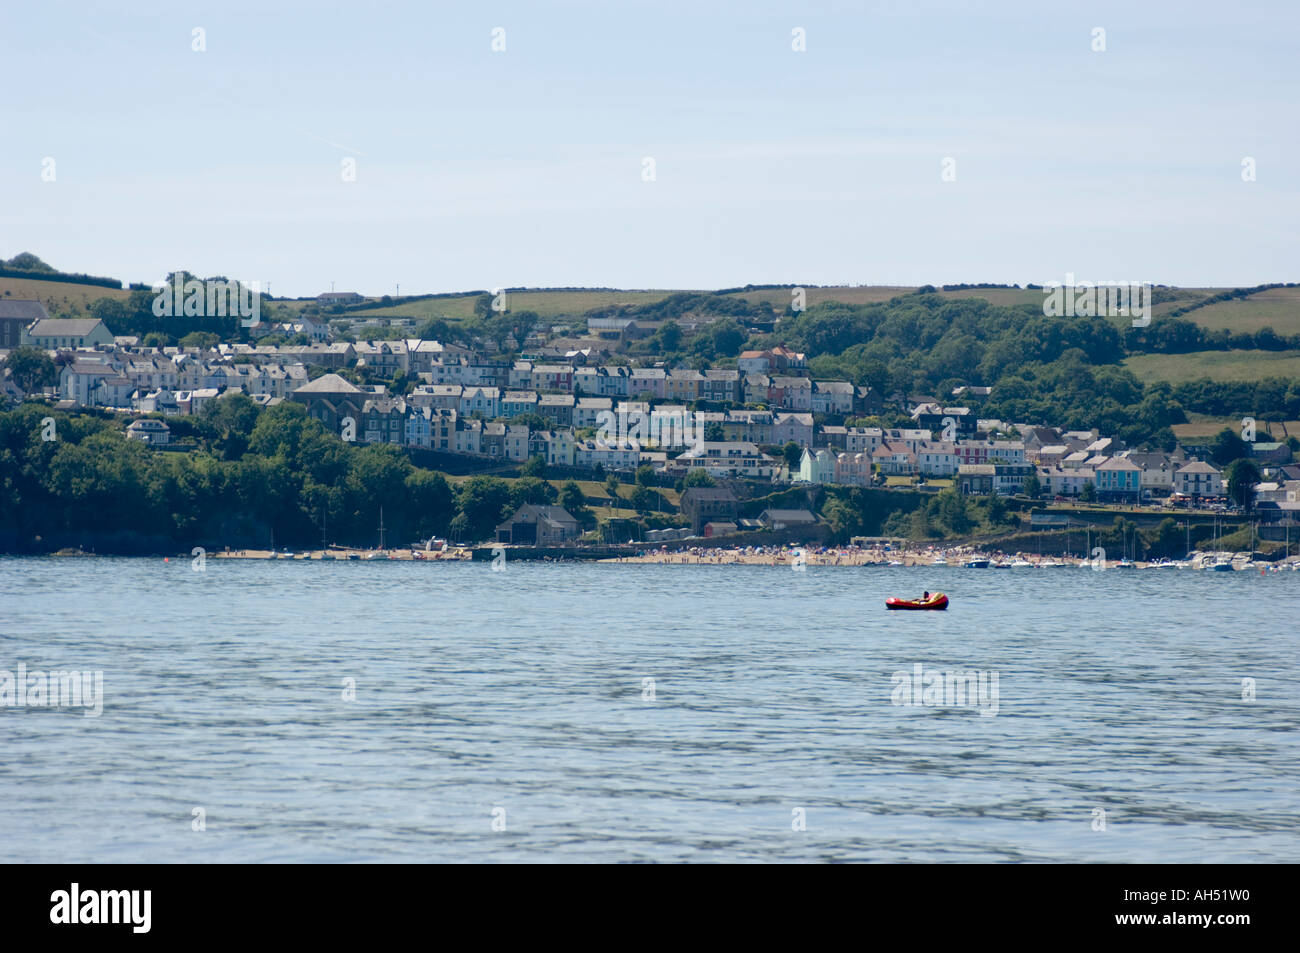 Looking at New Quay from Traethgwyn Beach, between Cei Bach and New Quay, Ceredigion Wales UK summer afternon - Stock Image